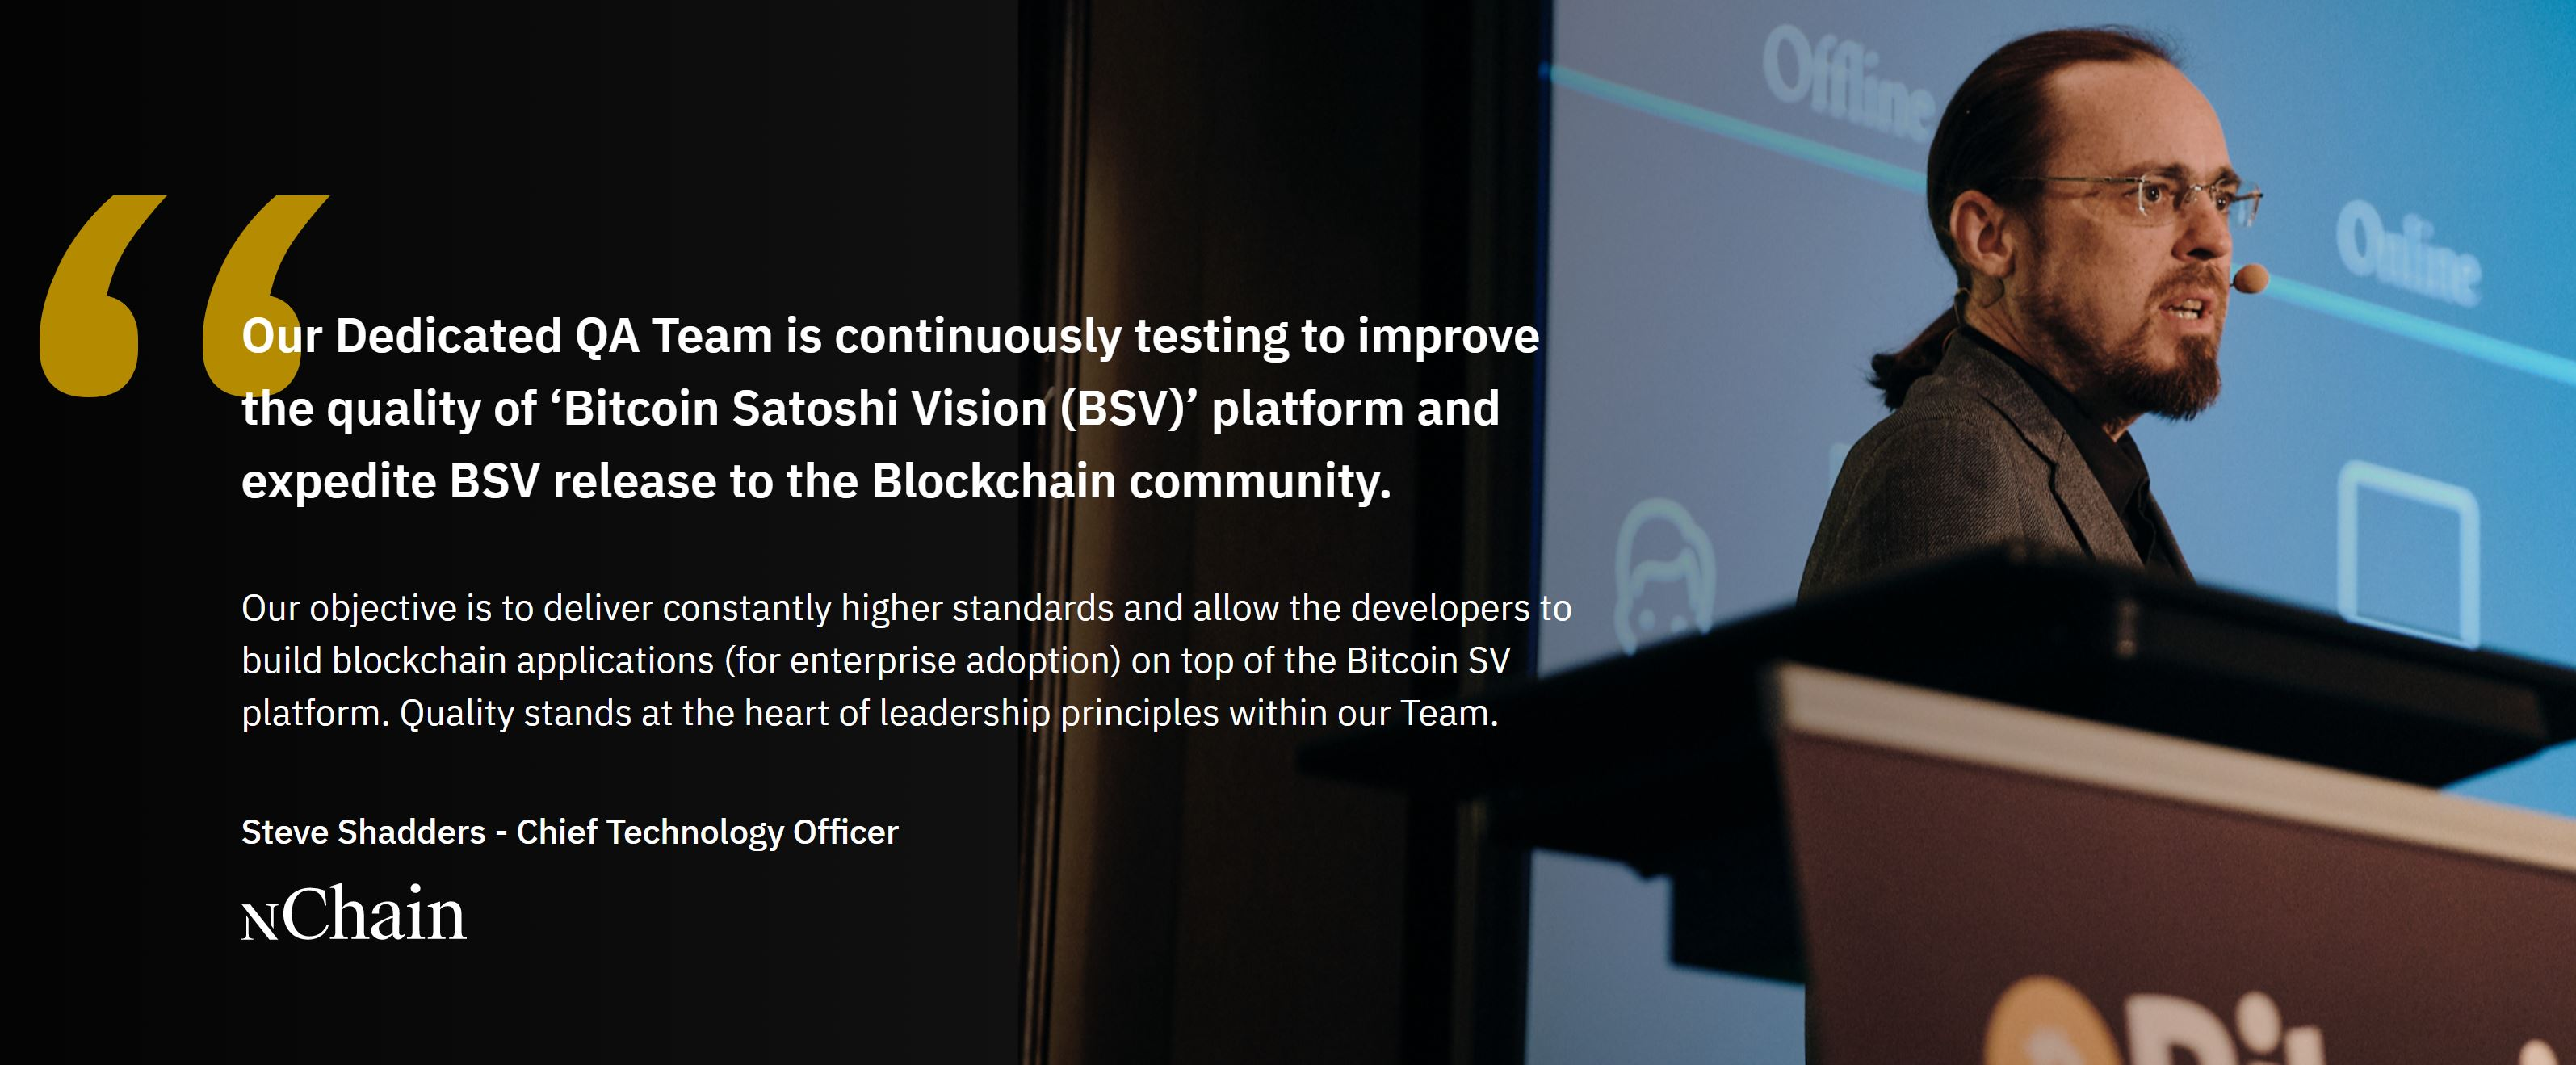 Bitcoin SV nChain and quote from Steve Shadders